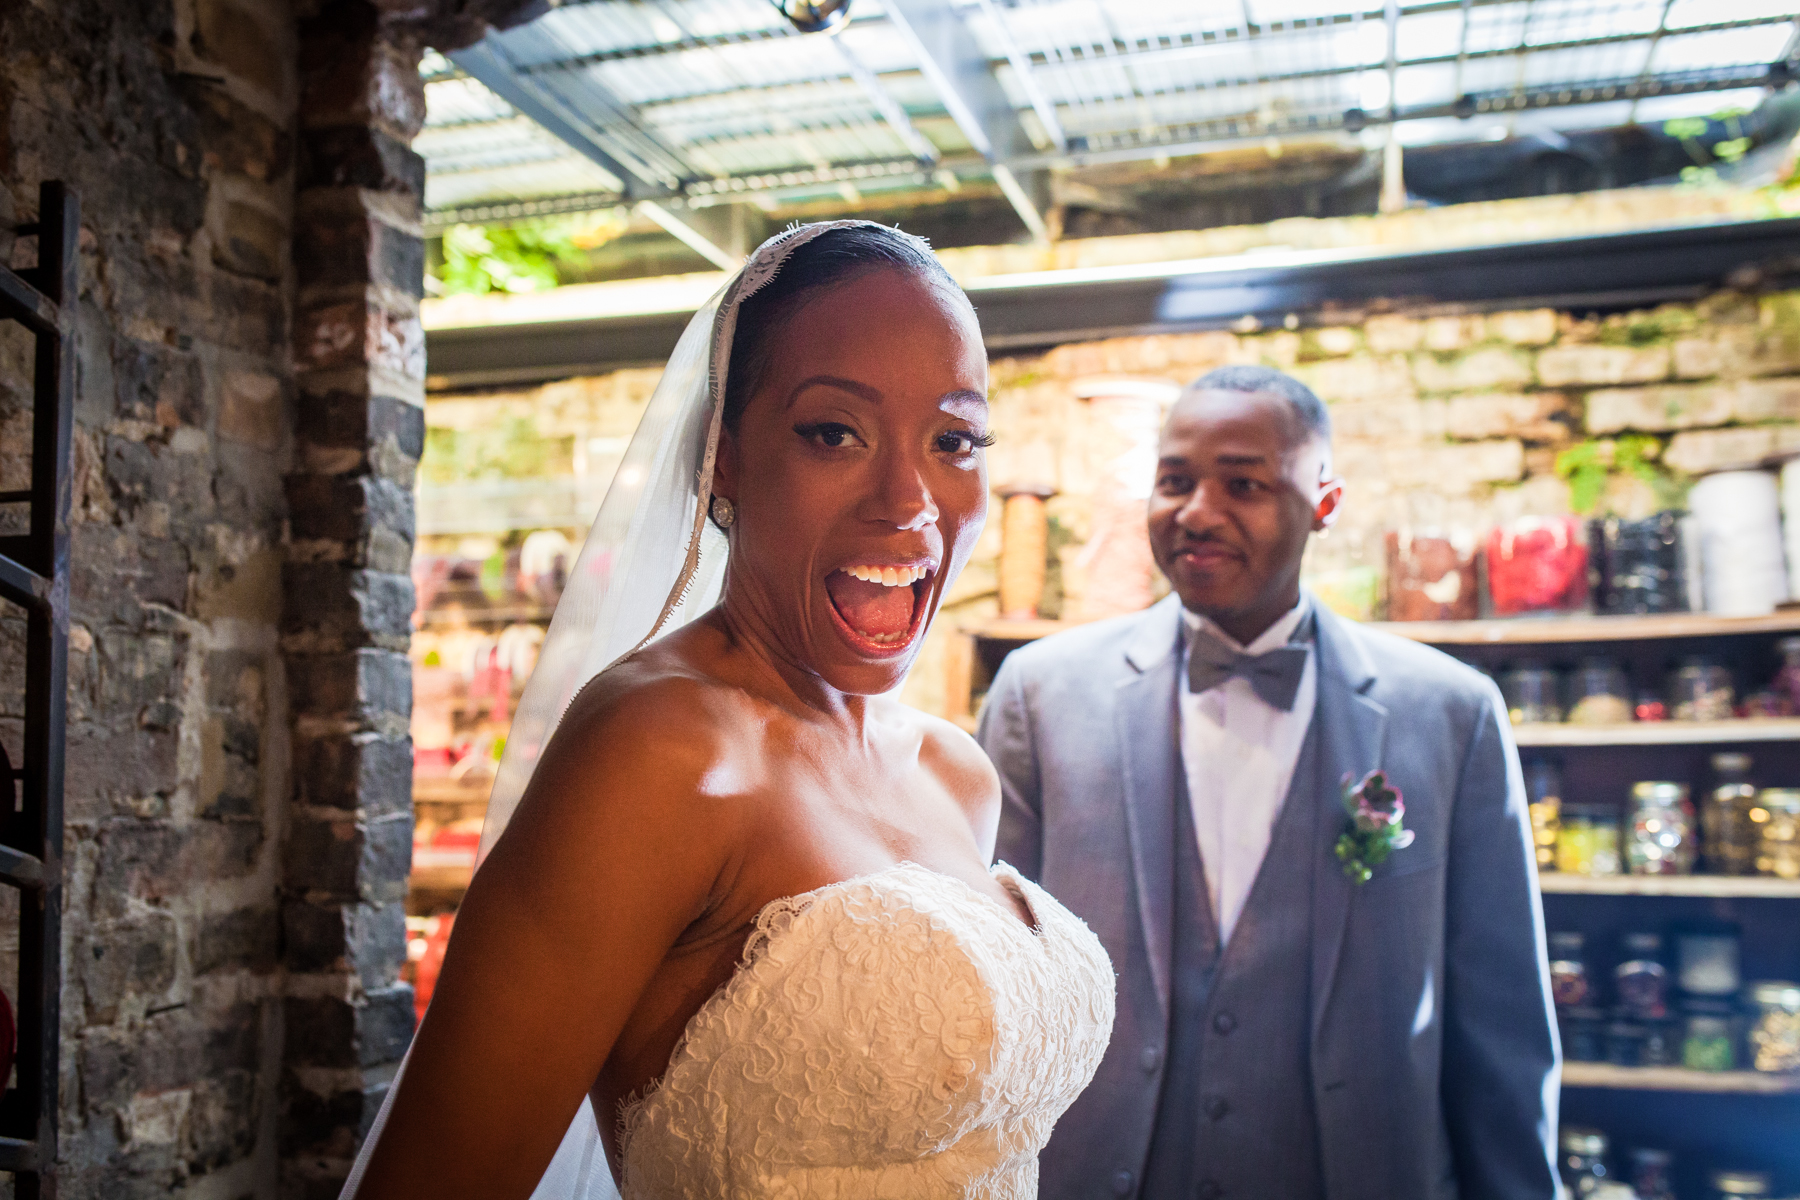 chicago-documentary-wedding-at-a-new-leaf-vintage-inspired-jumping-the-broom-oriana-koren-1015.jpg